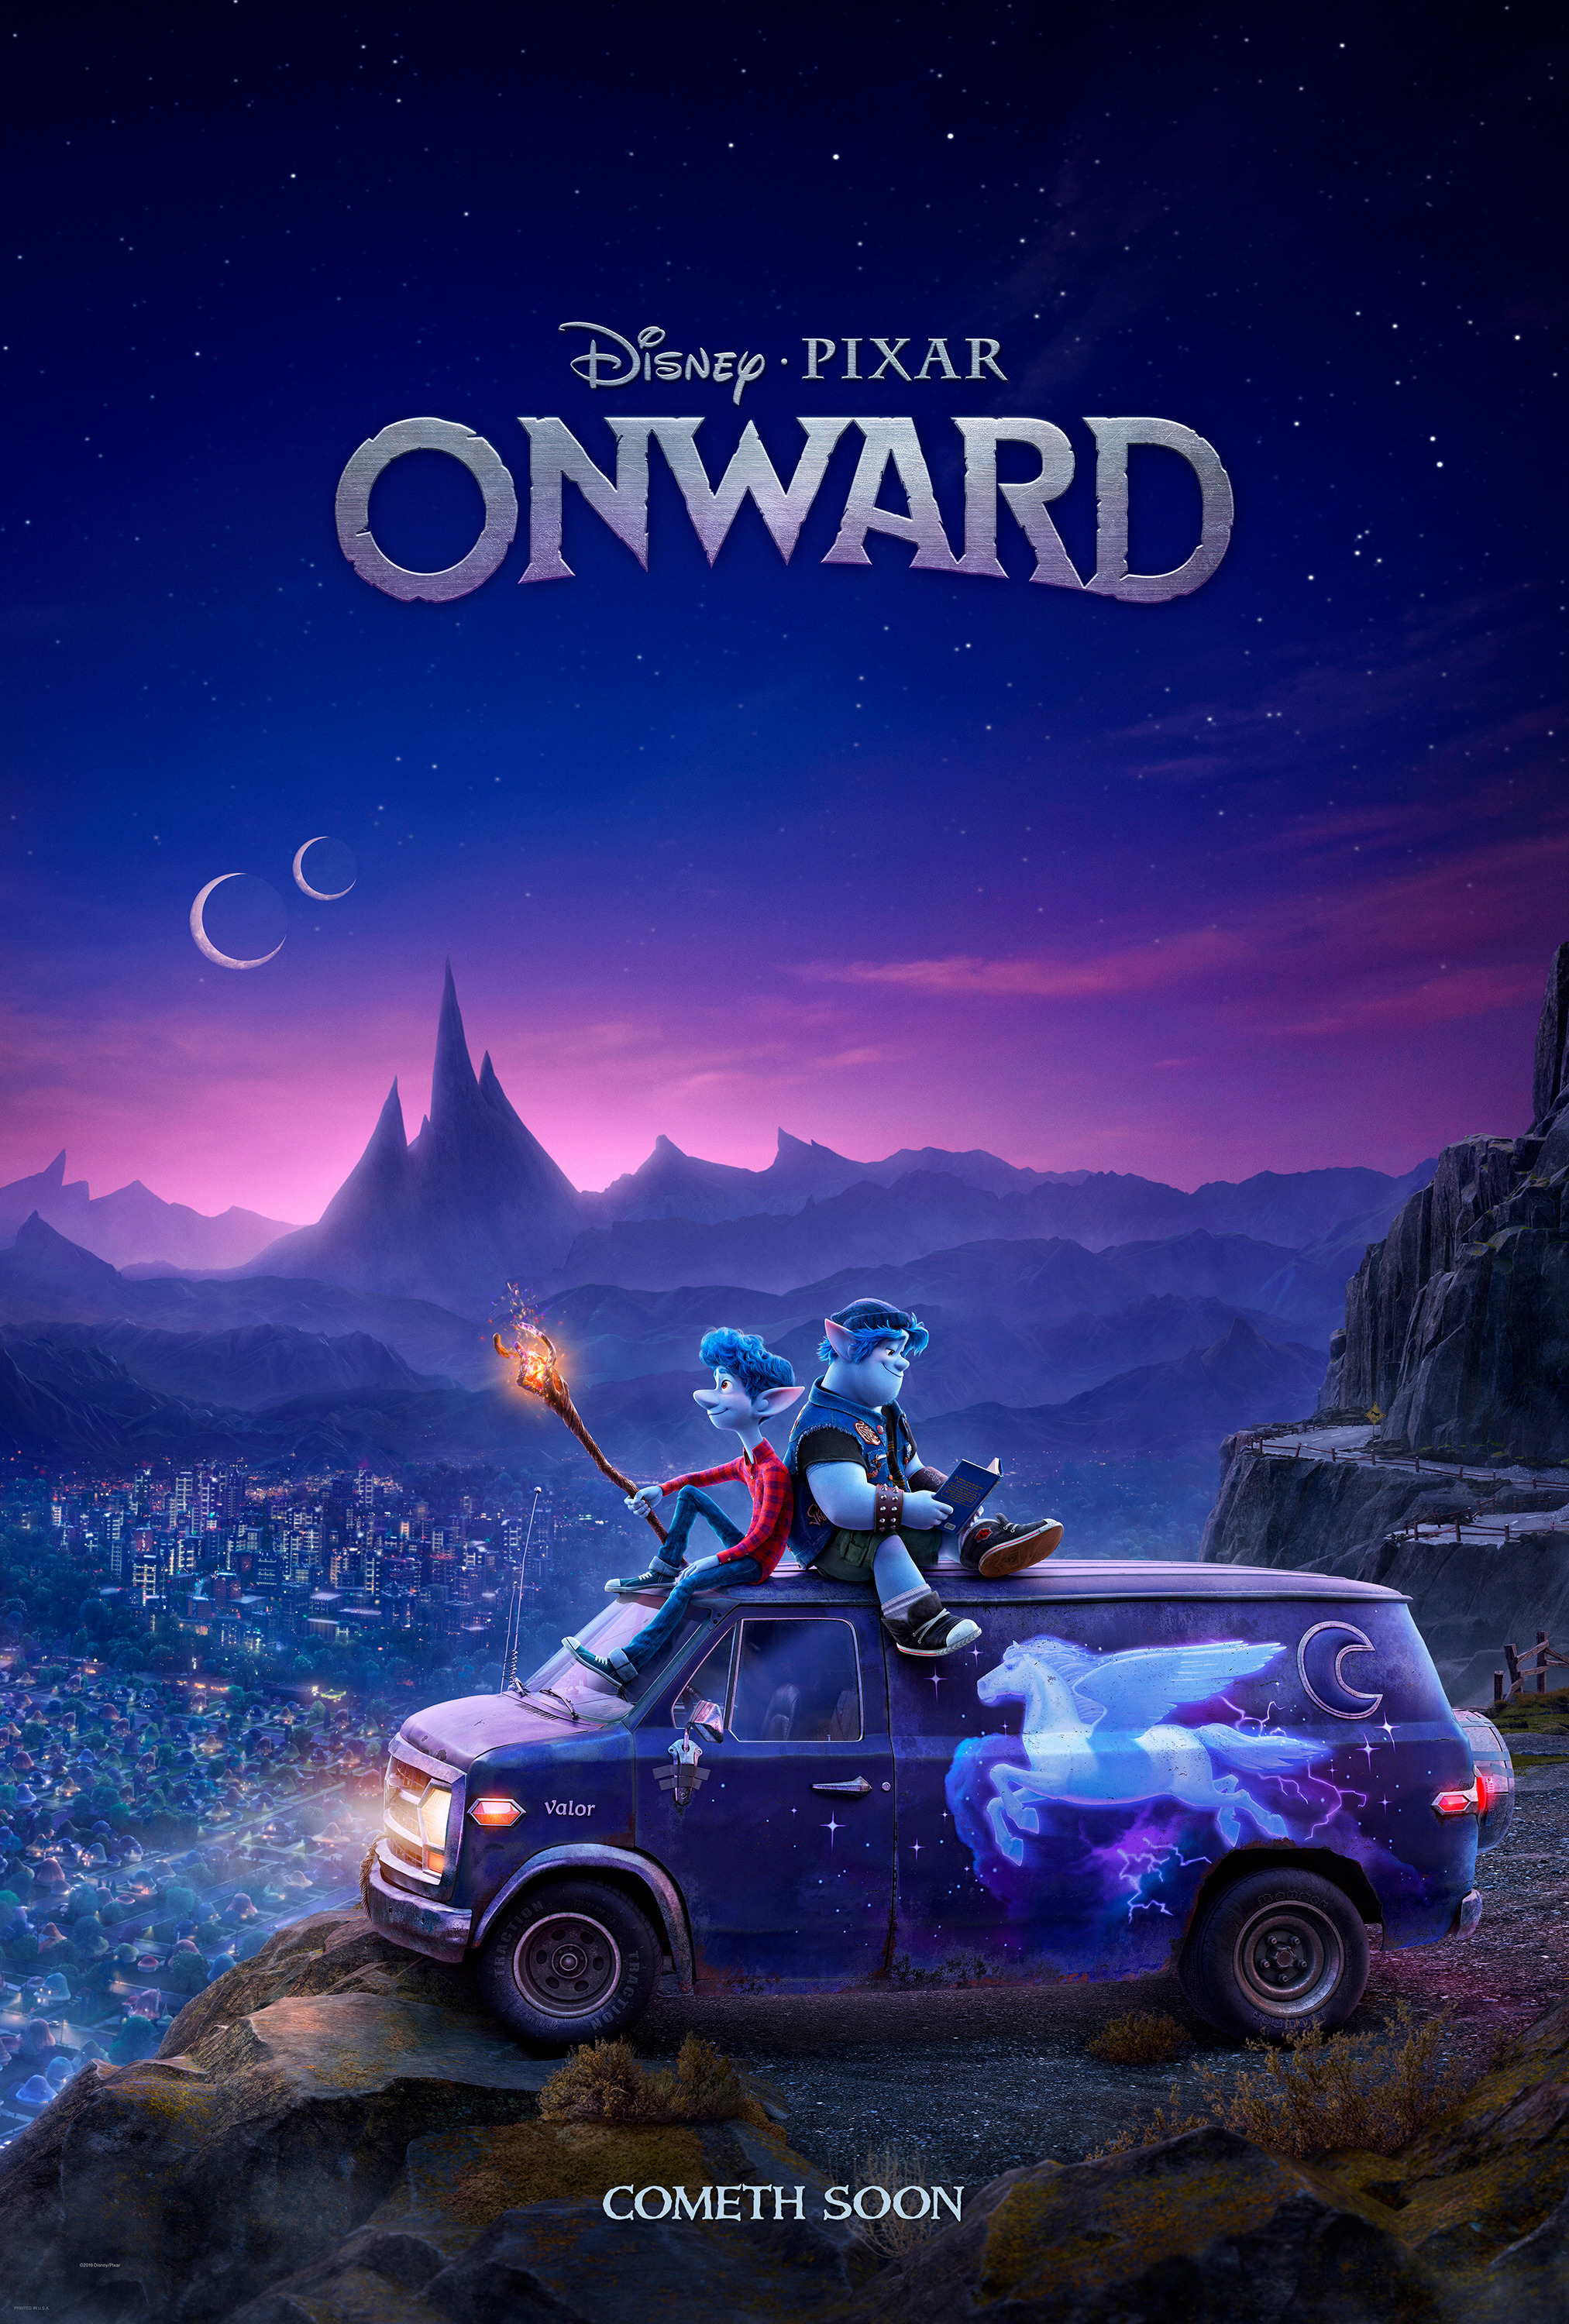 szmk_onward_disney_pixar_animacios_film_elore_1.jpg